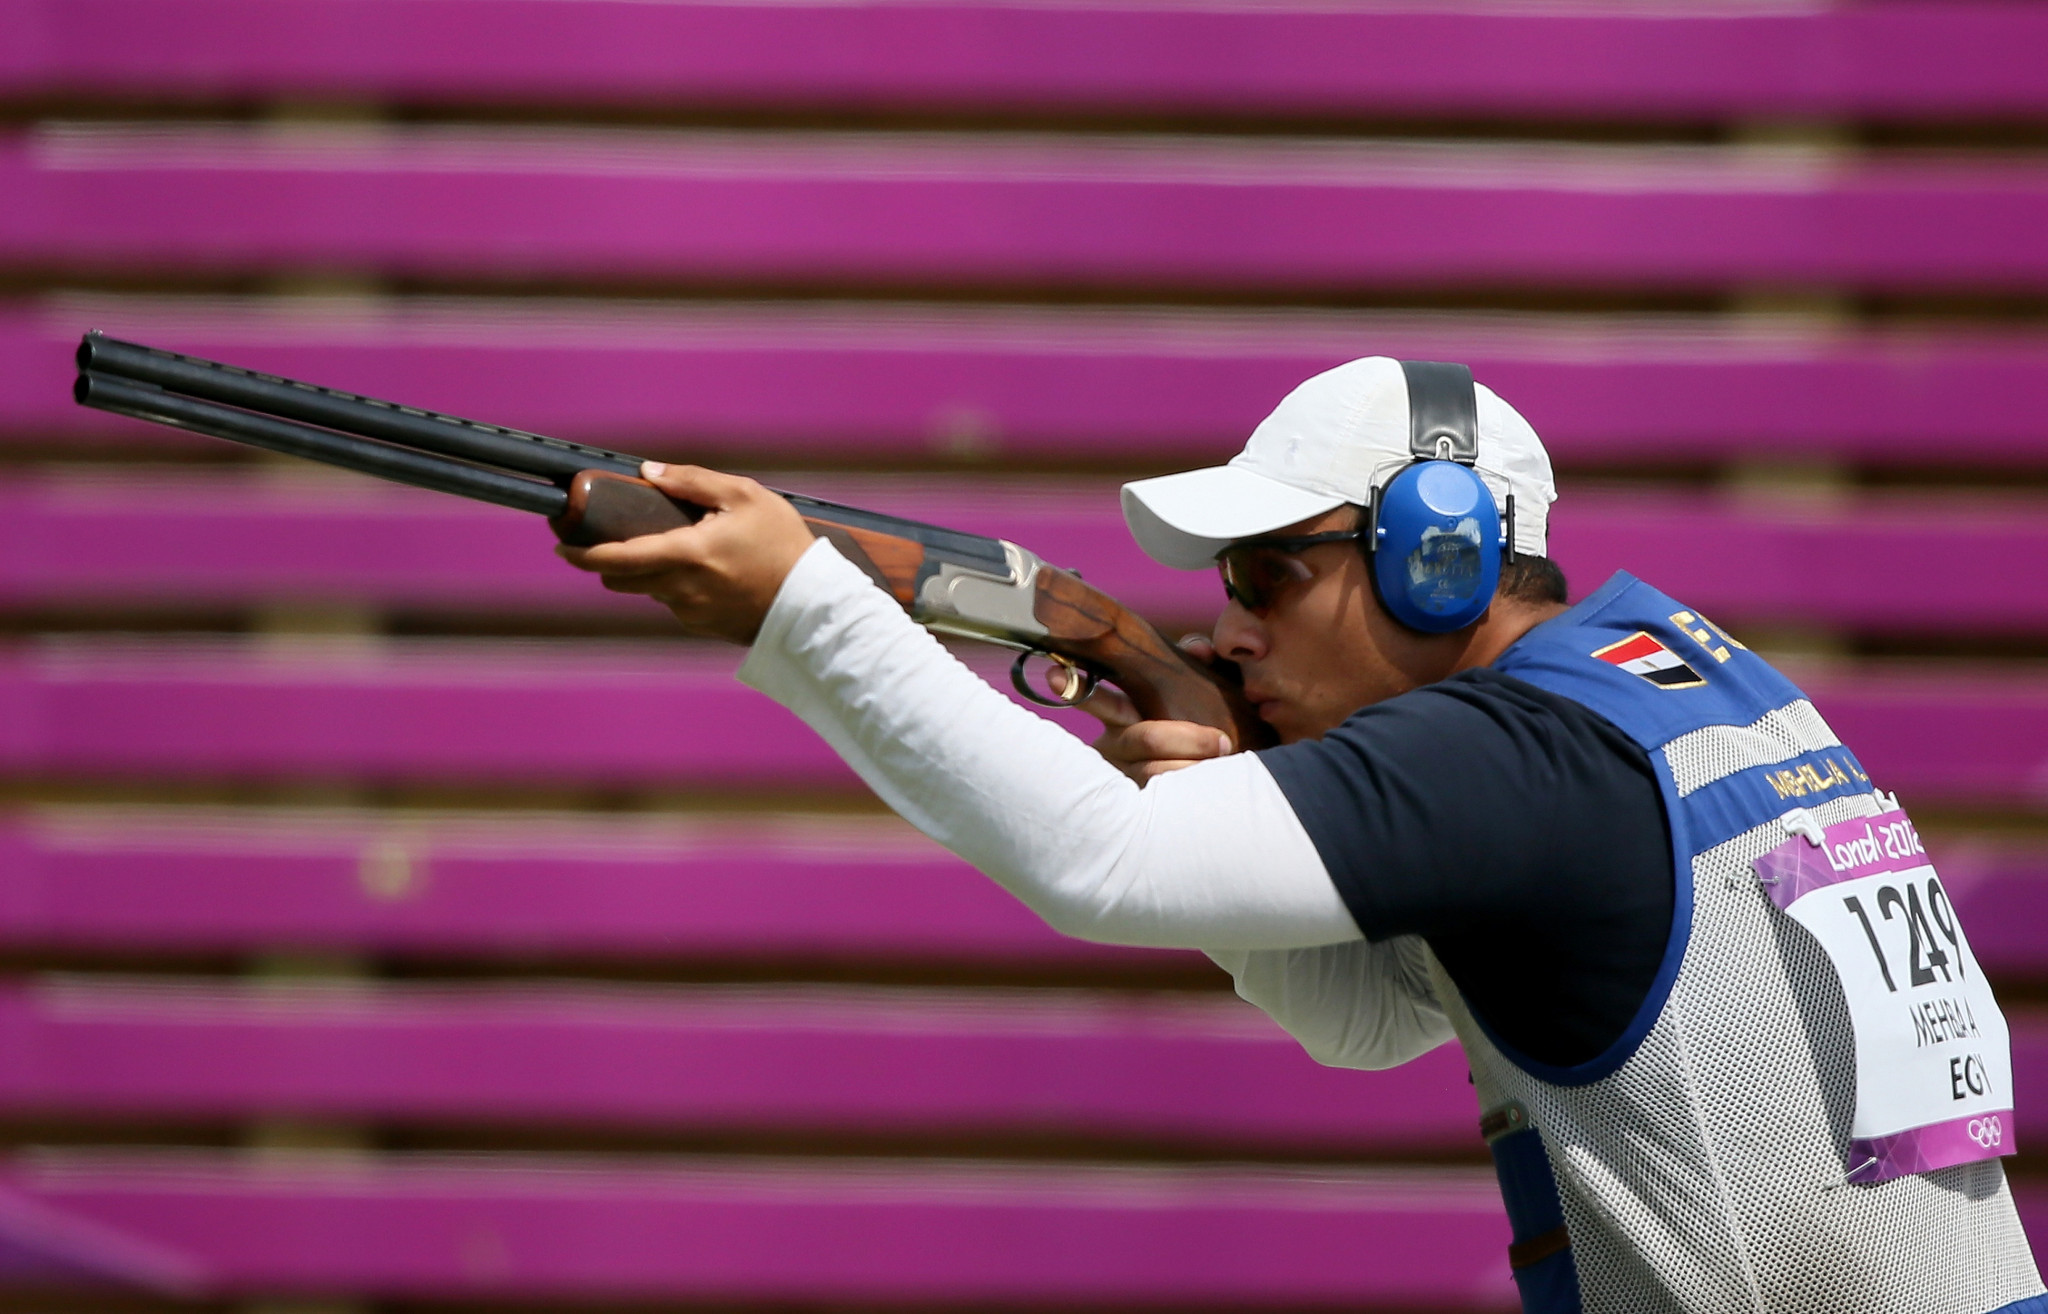 Egypt's Azmy Mehelba narrowly missed the final two but secured a bronze medal in Nicosia ©Getty Images